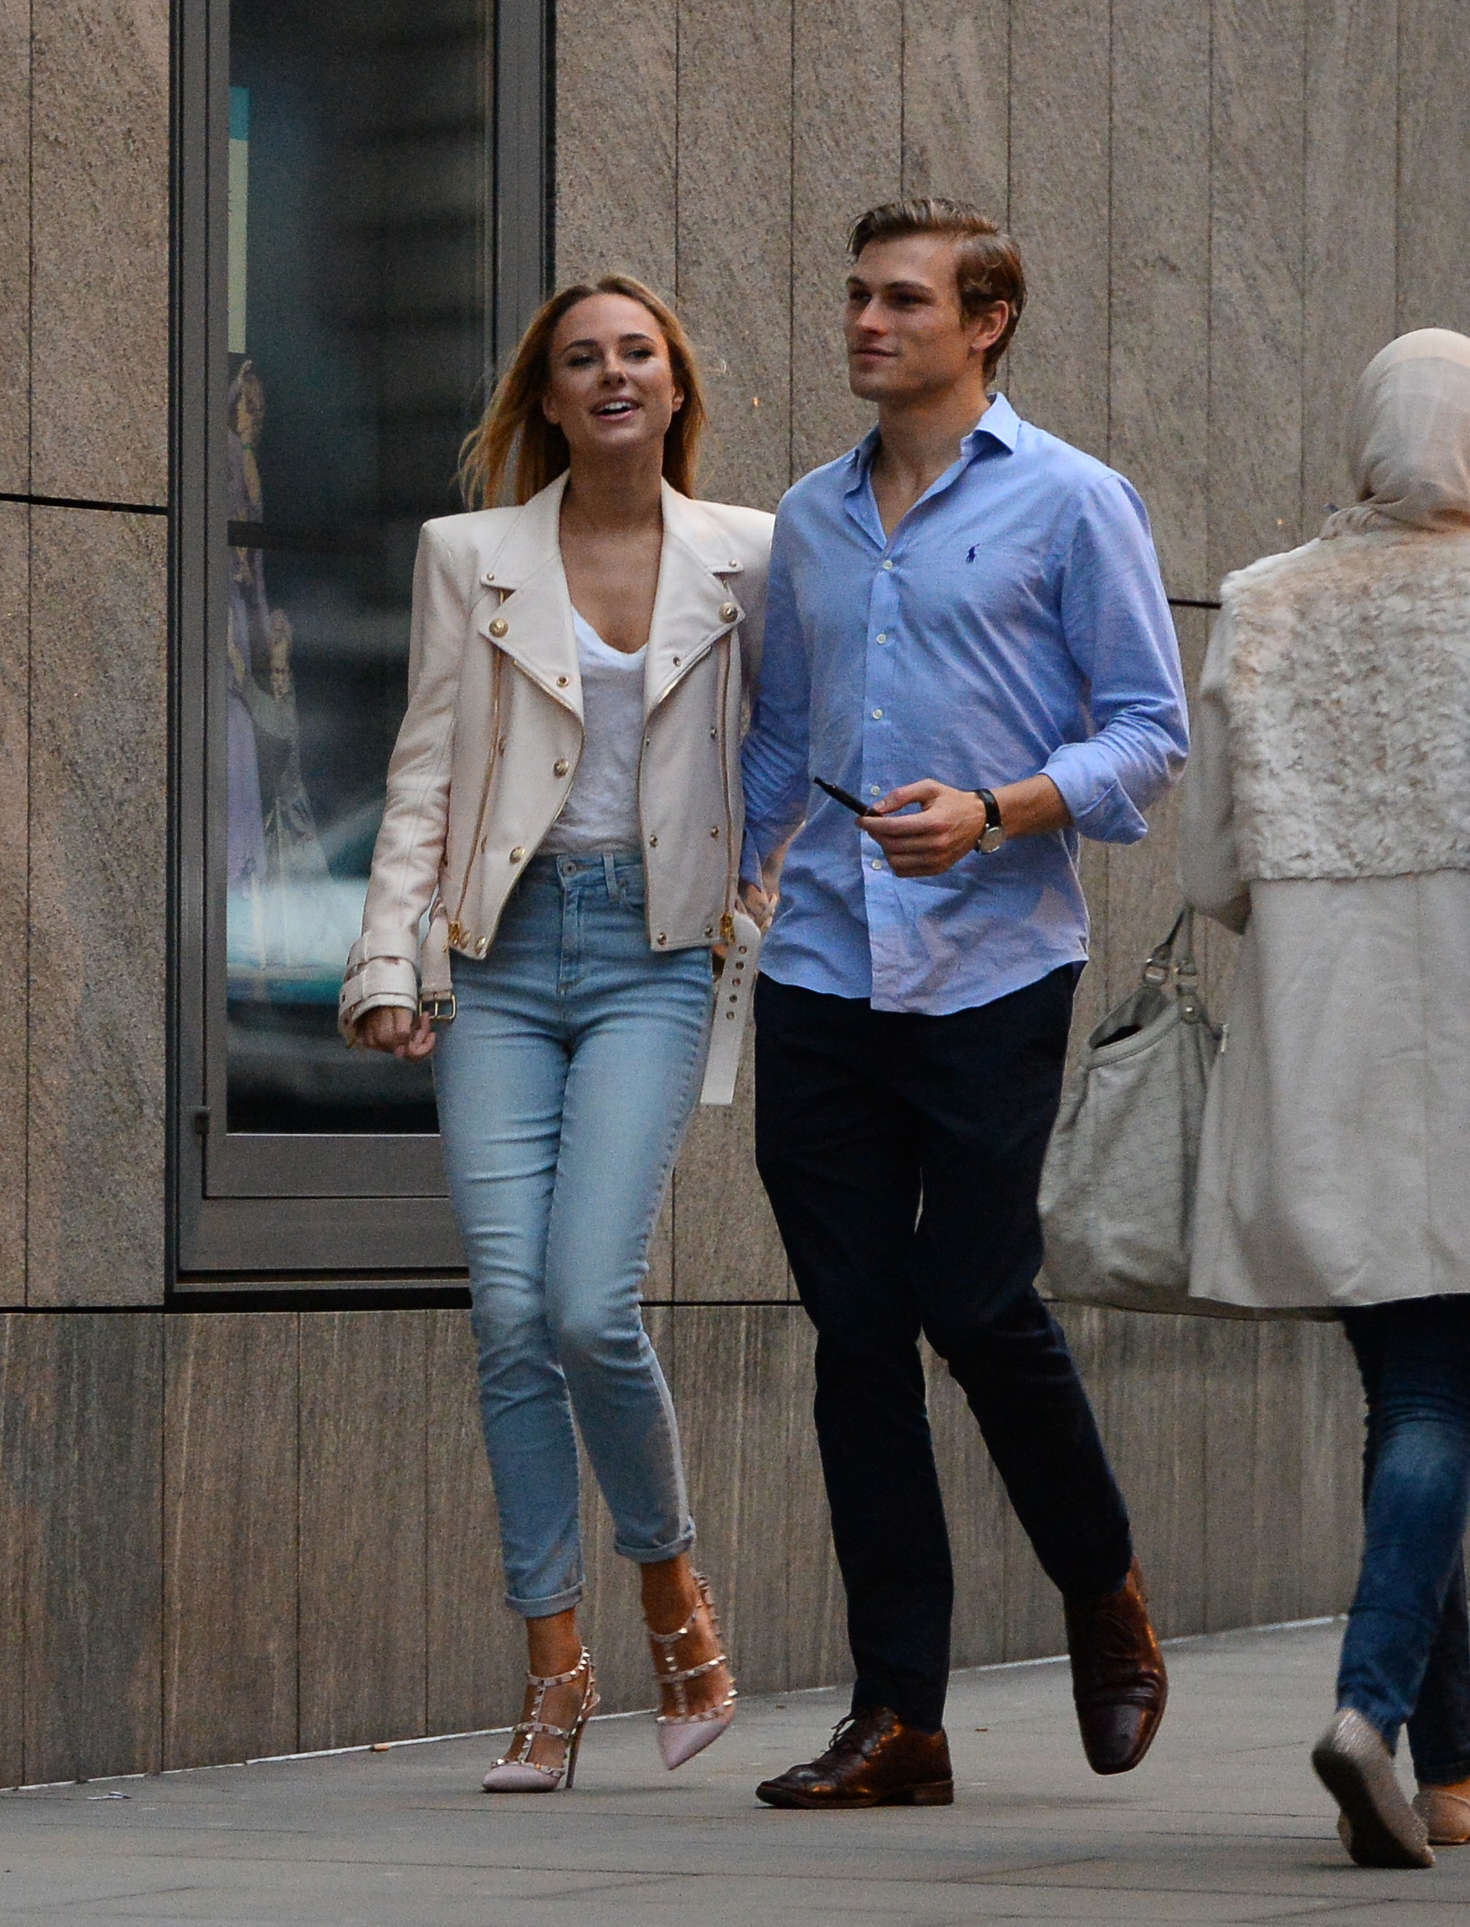 Kimberley Garner and boyfriend out in Covent Garden